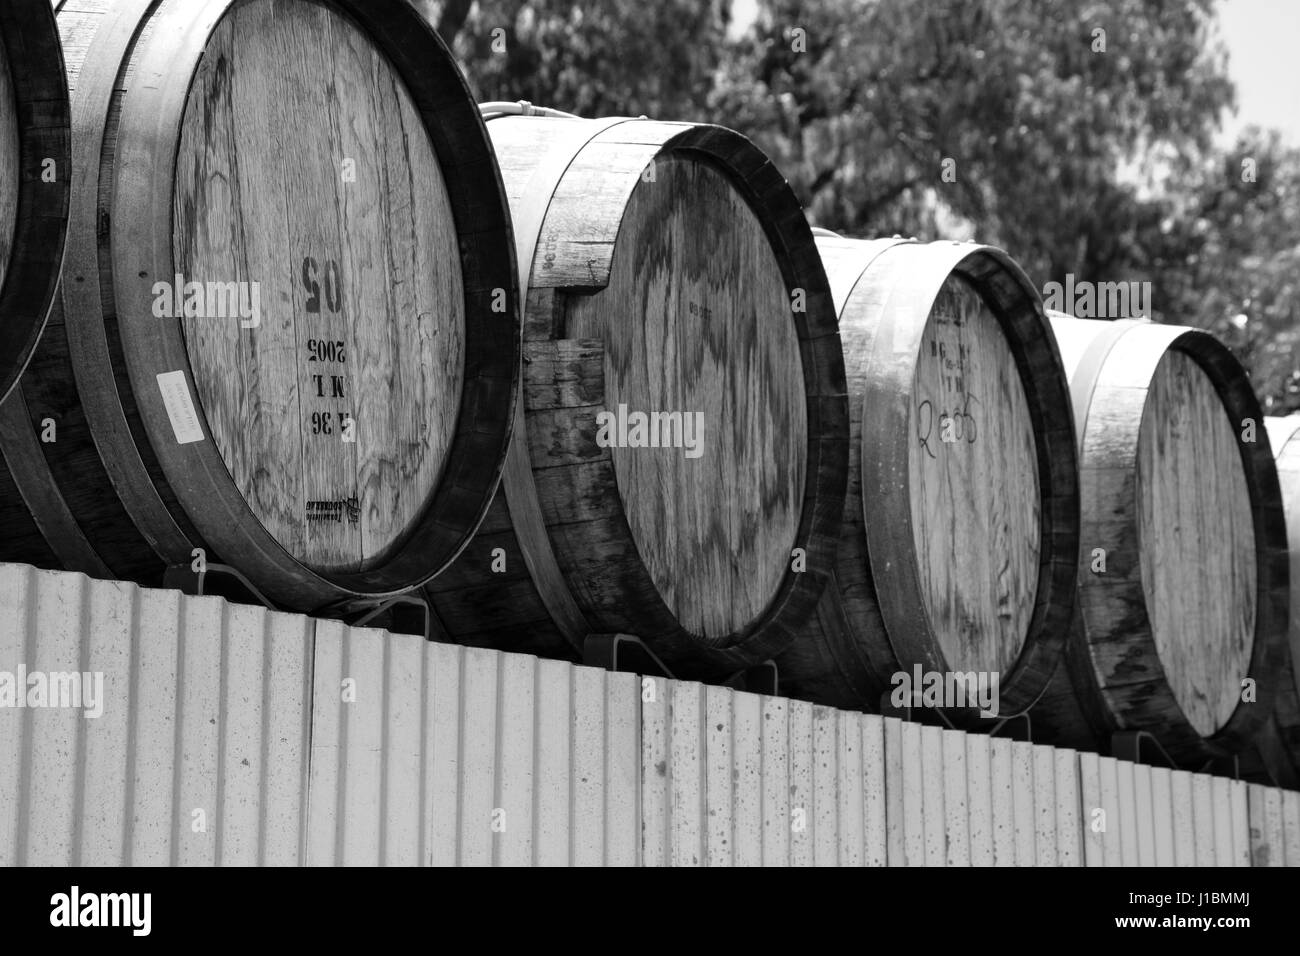 stacked oak wine barrels. A Stack And Row Of Aged Oak Wood Cask Barrels For Wine Storage Outdoors Stacked